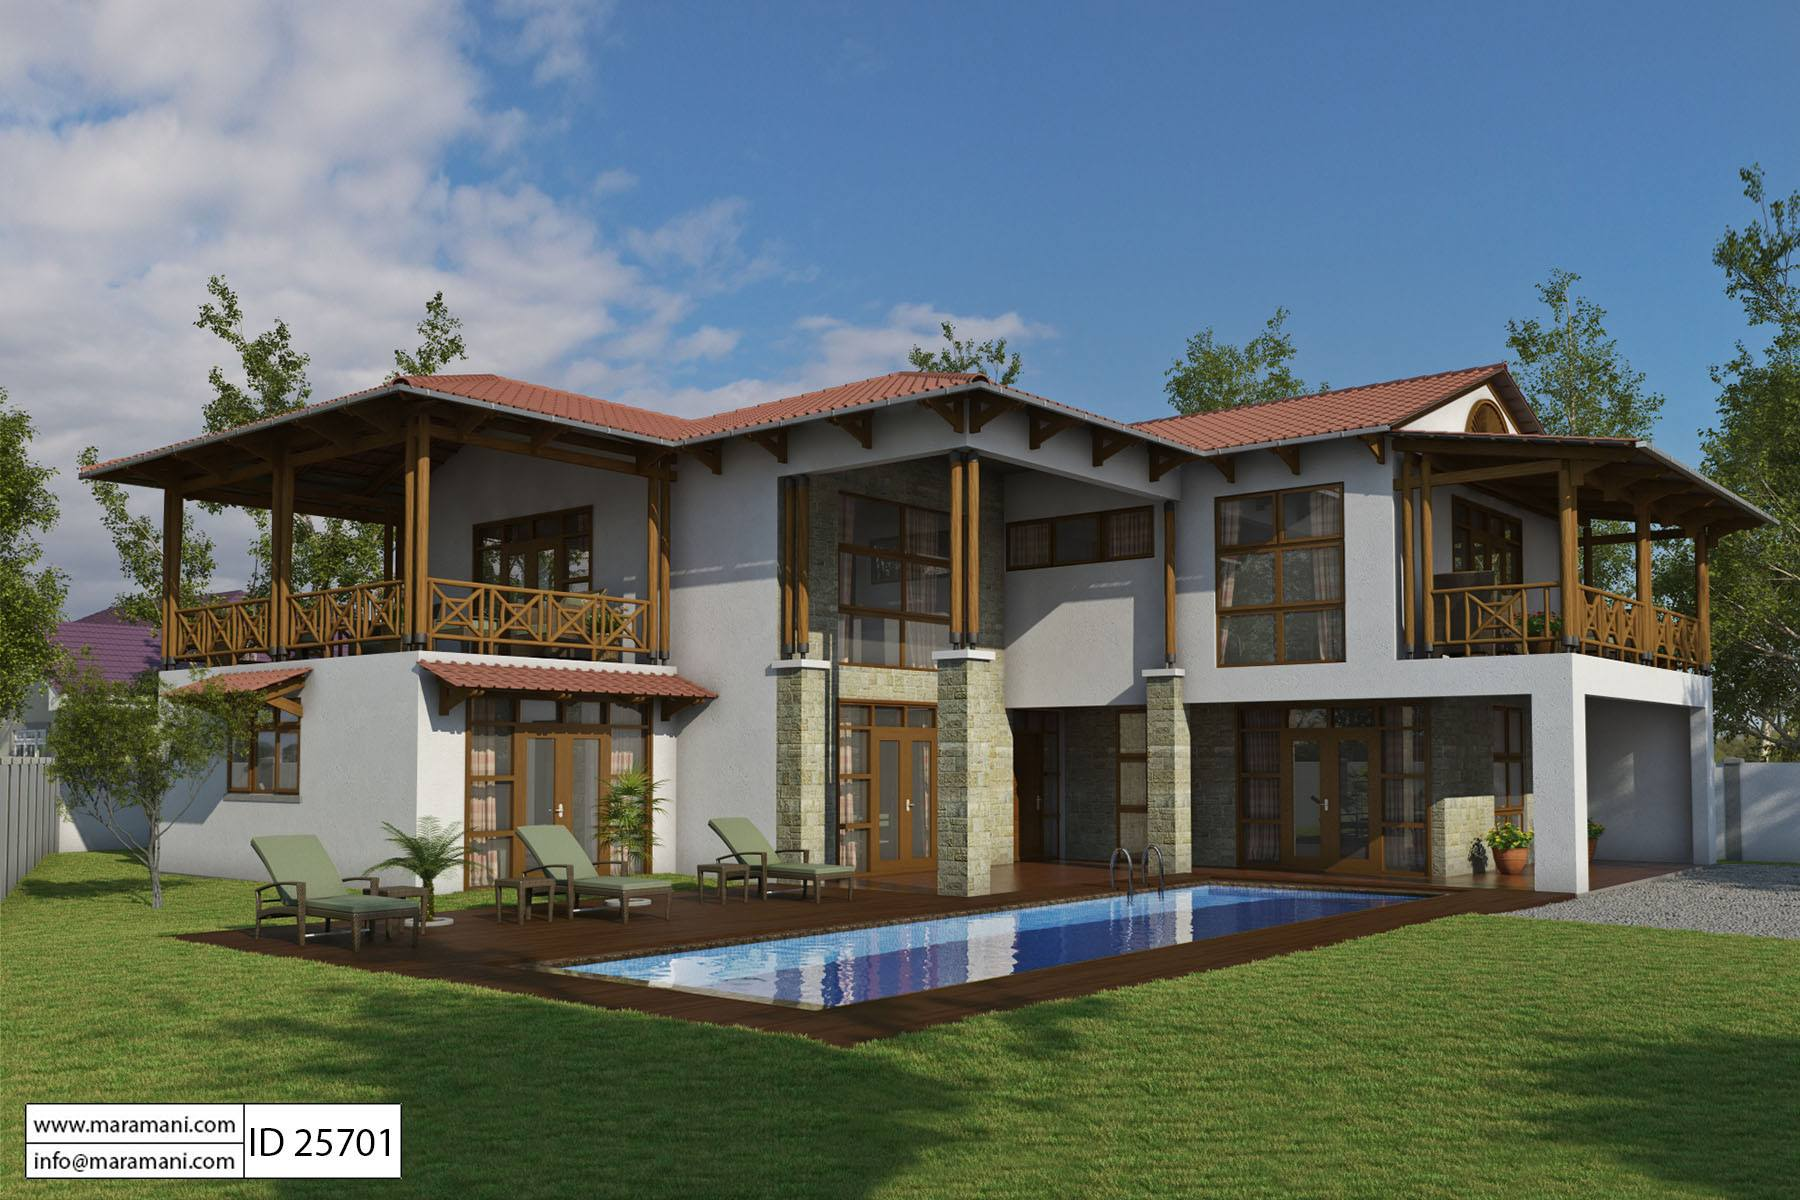 Bali style house with 5 bedrooms id 25701 house plans for House plans 5 bedrooms 1 story